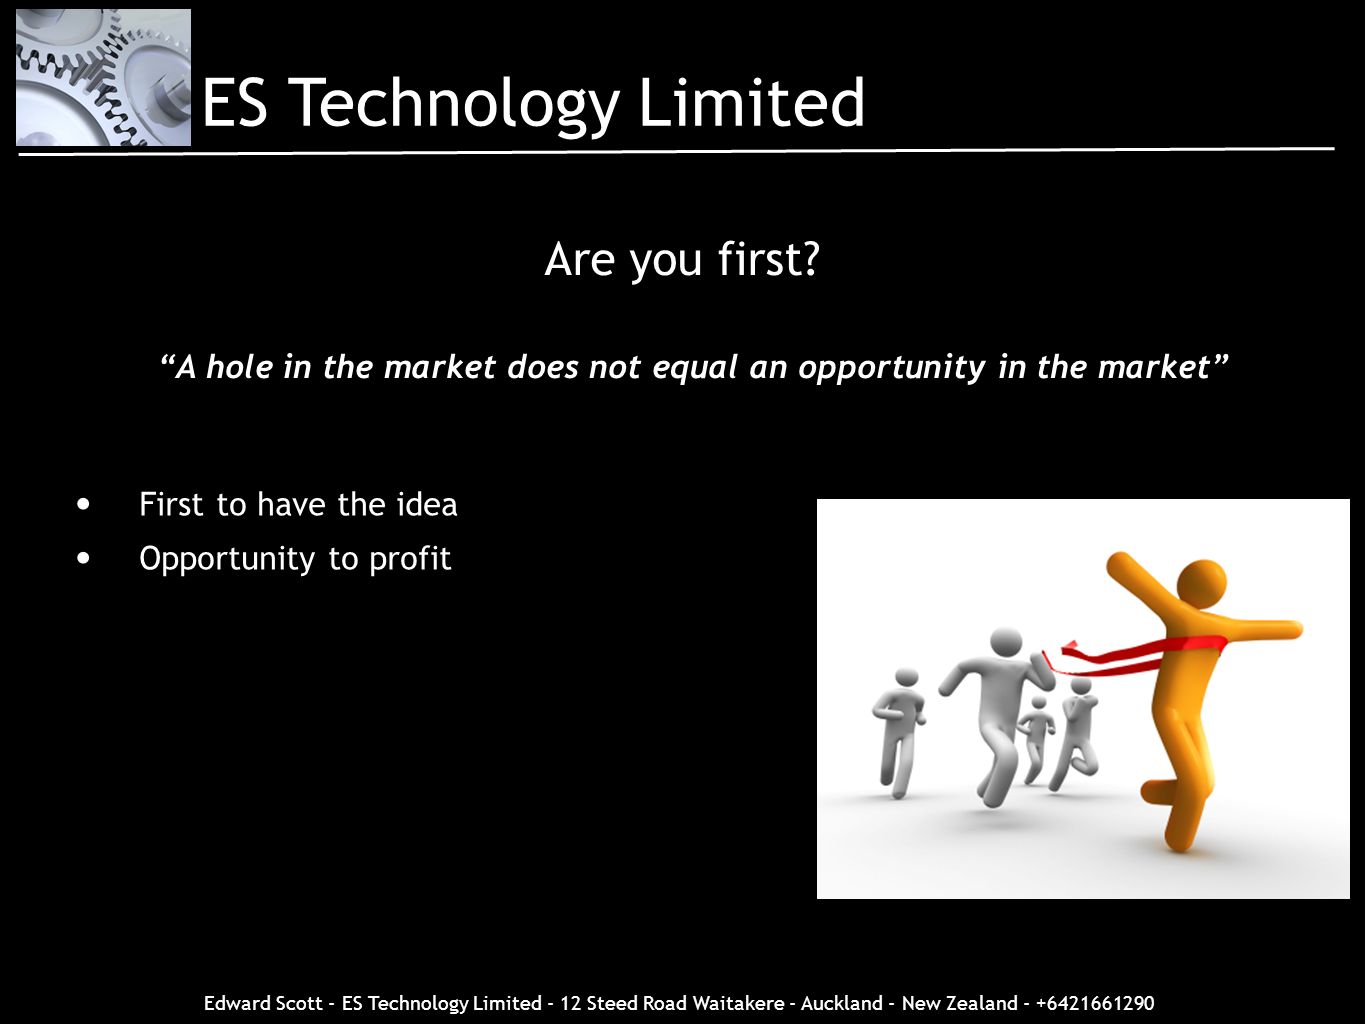 A hole in the market does not equal an opportunity in the market